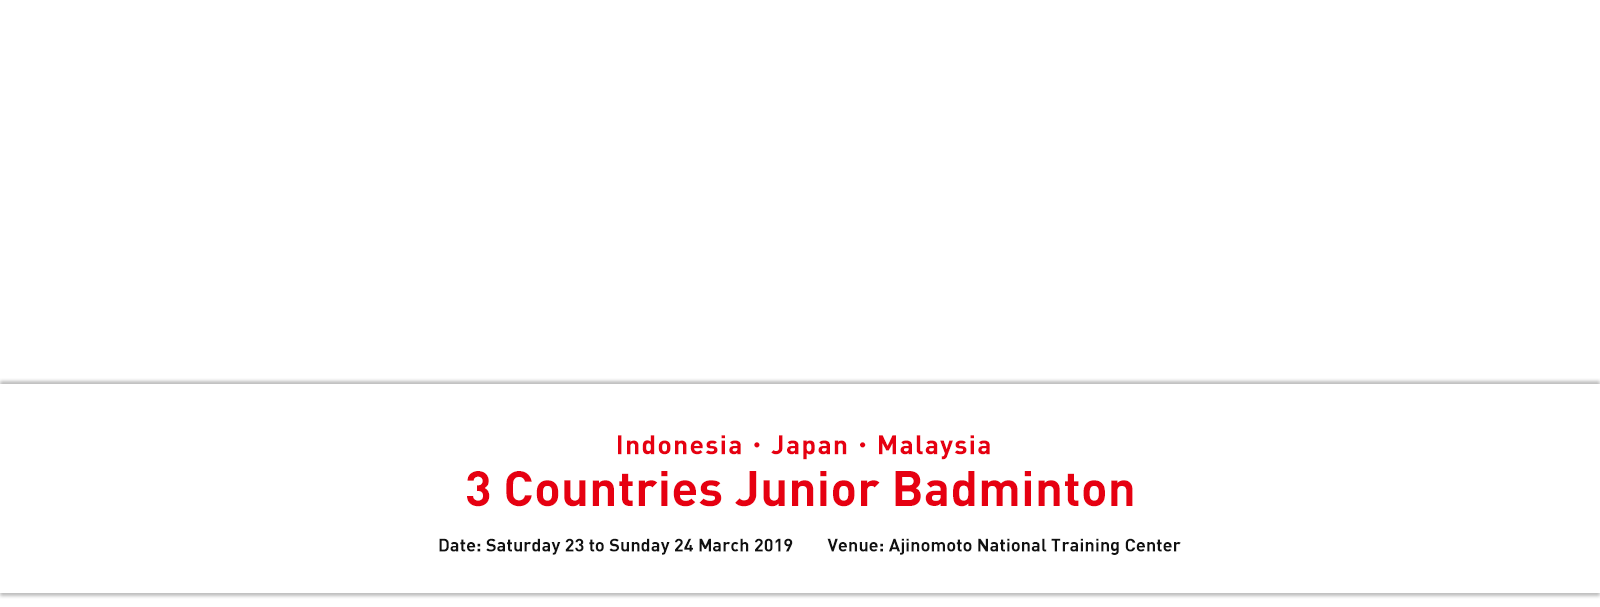 Indonesia・Japan・Malaysia 3 Countries Junior Badminton Date: Saturday 23 to Sunday 24 March 2019 Venue: Ajinomoto National Training Center